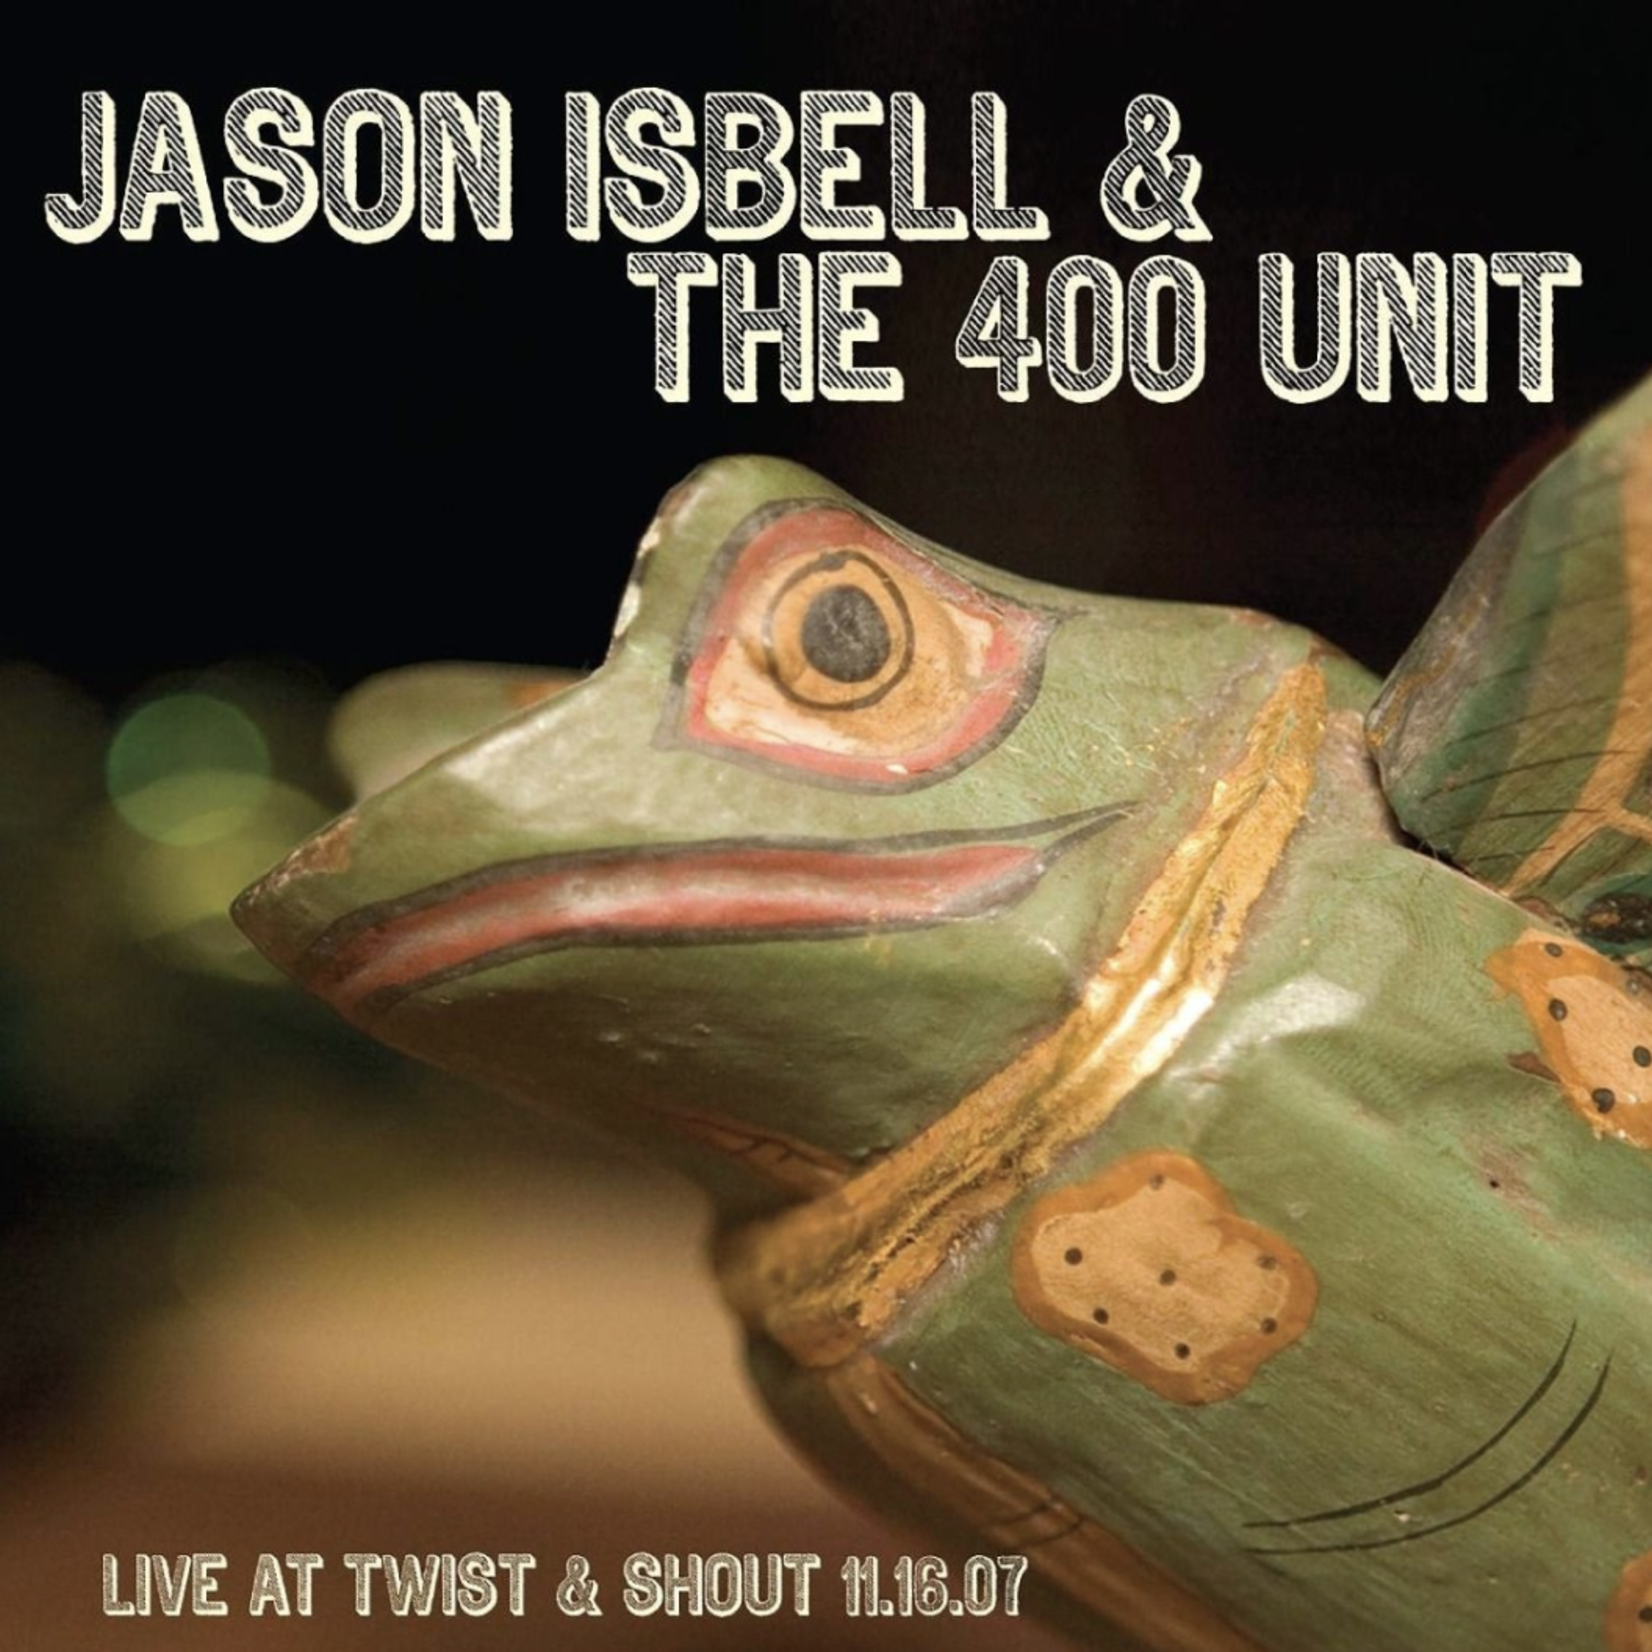 Monostereo Jason Isbell & The 400 Unit Live At Twist & Shout 11.16.07